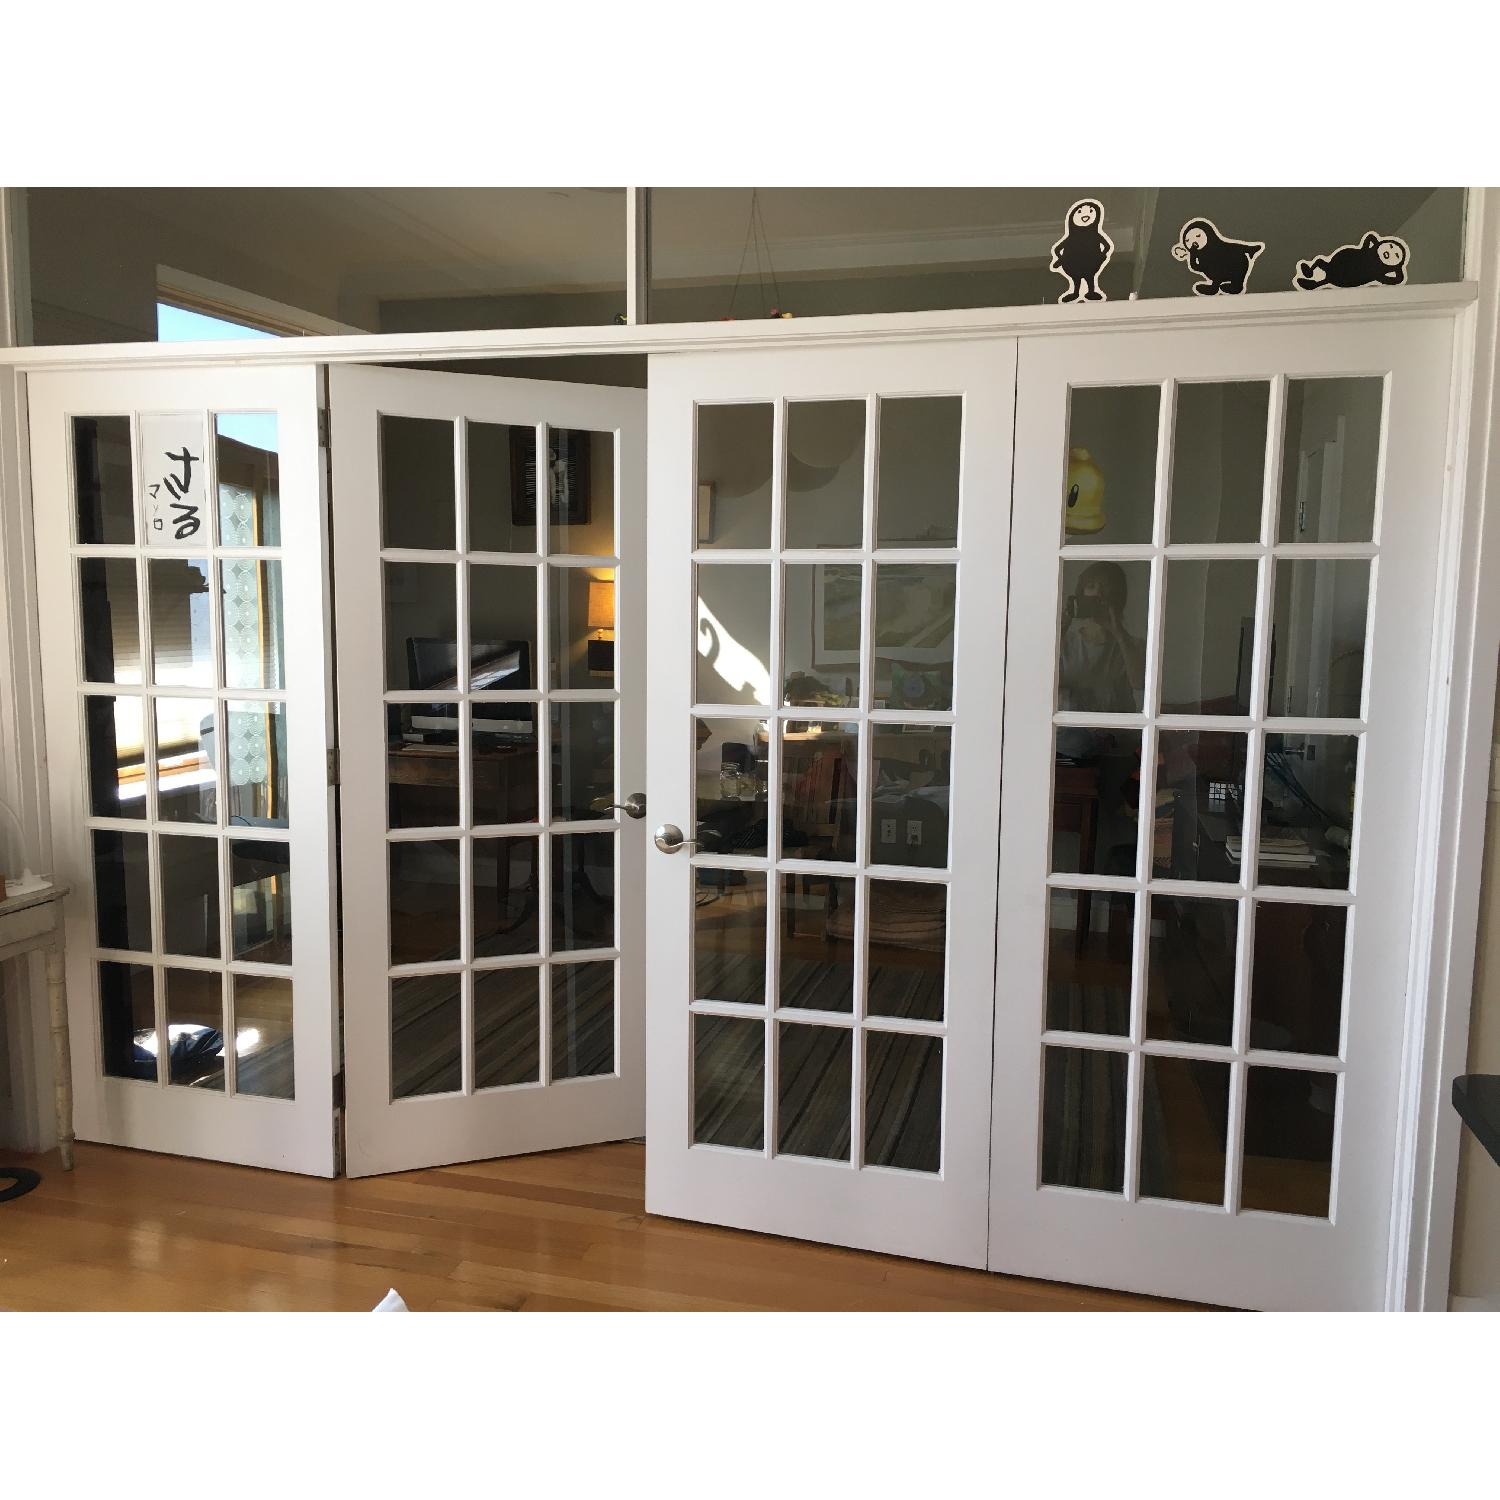 French Door 4 Panel Room Divider - image-1